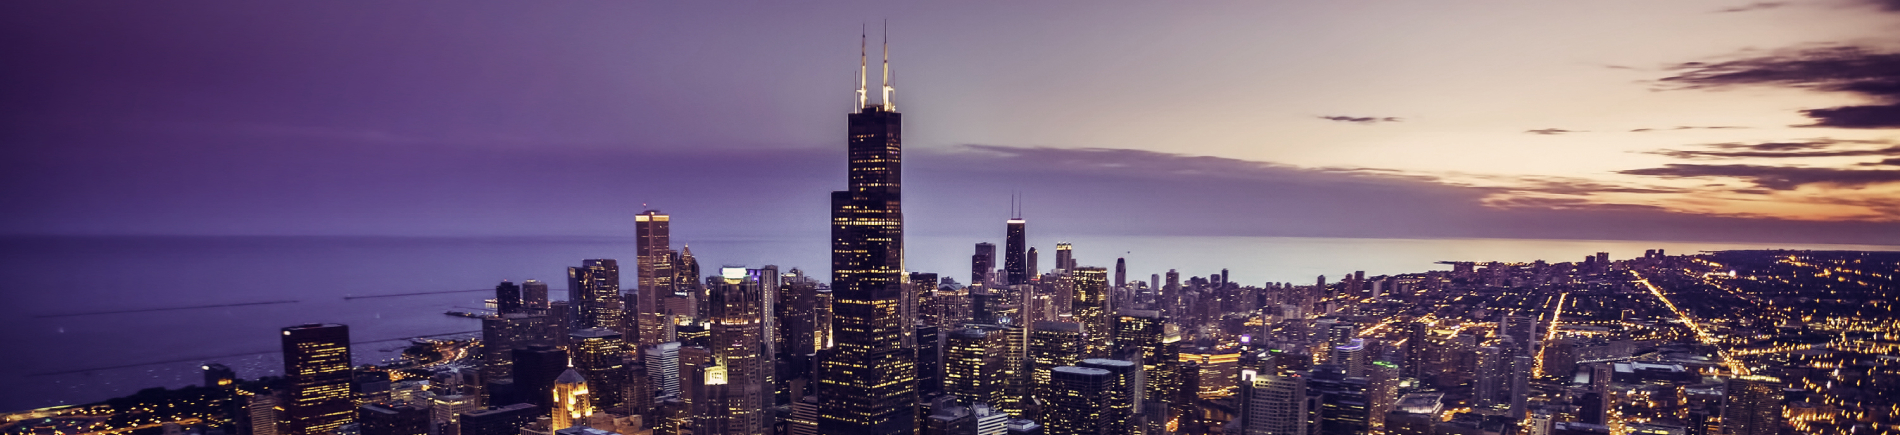 Real Property Management Chicago Edge - Your Experts in Property Management Services